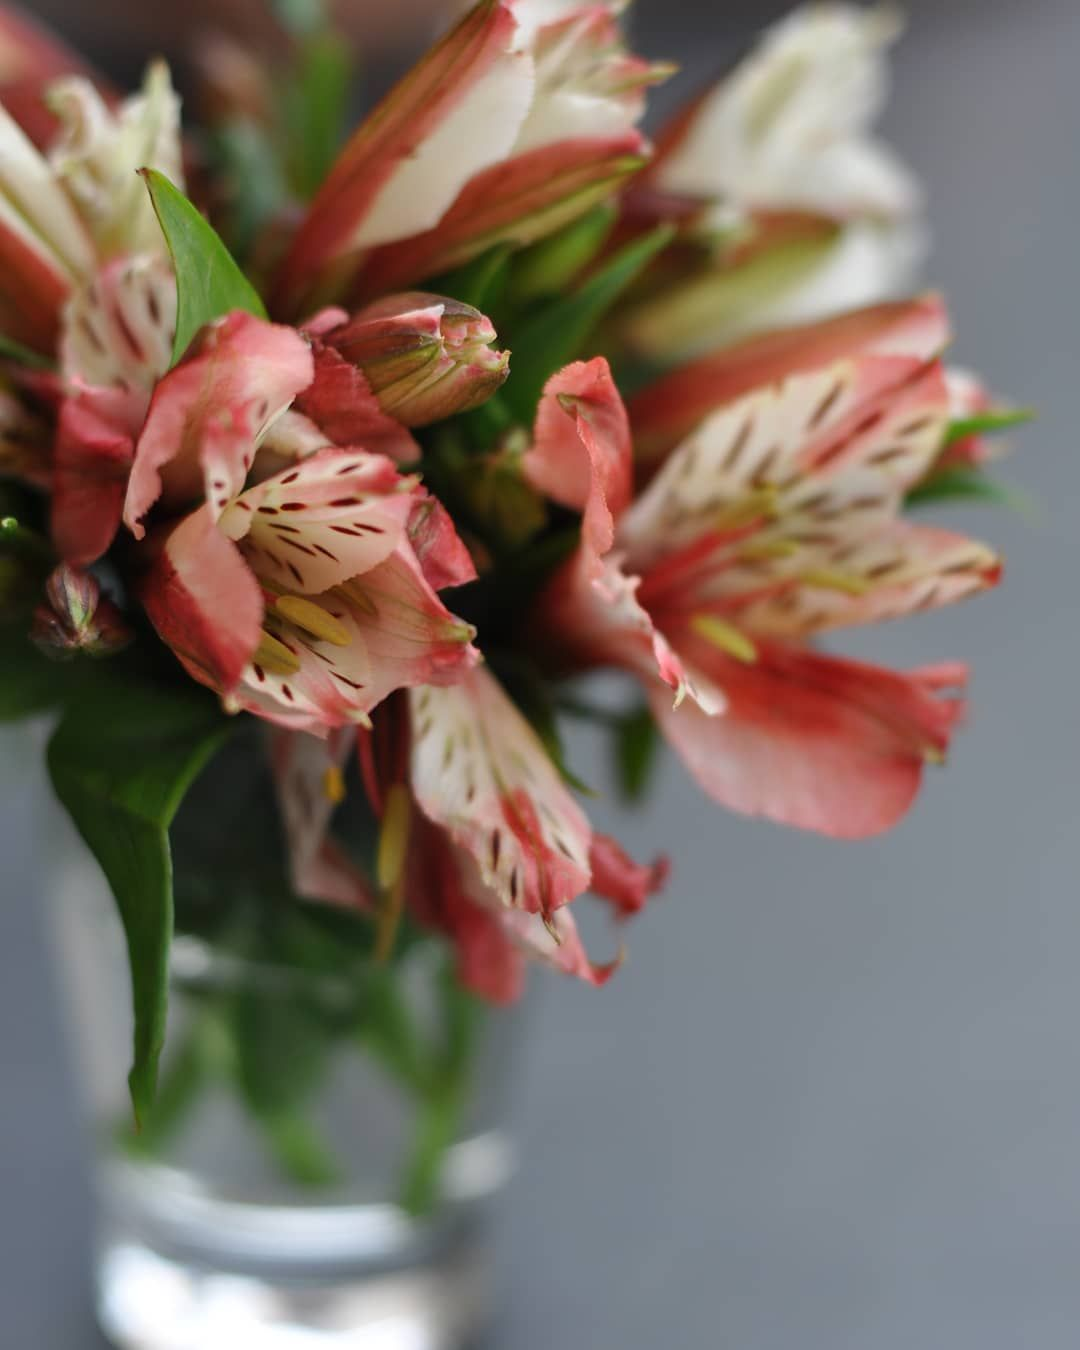 How To Grow And Care For Alstroemeria Also Known As Peruvian Lily In Your Home As Cutflowers Or As Bedding Or In 2020 Alstroemeria Flowers Name List Peruvian Lilies